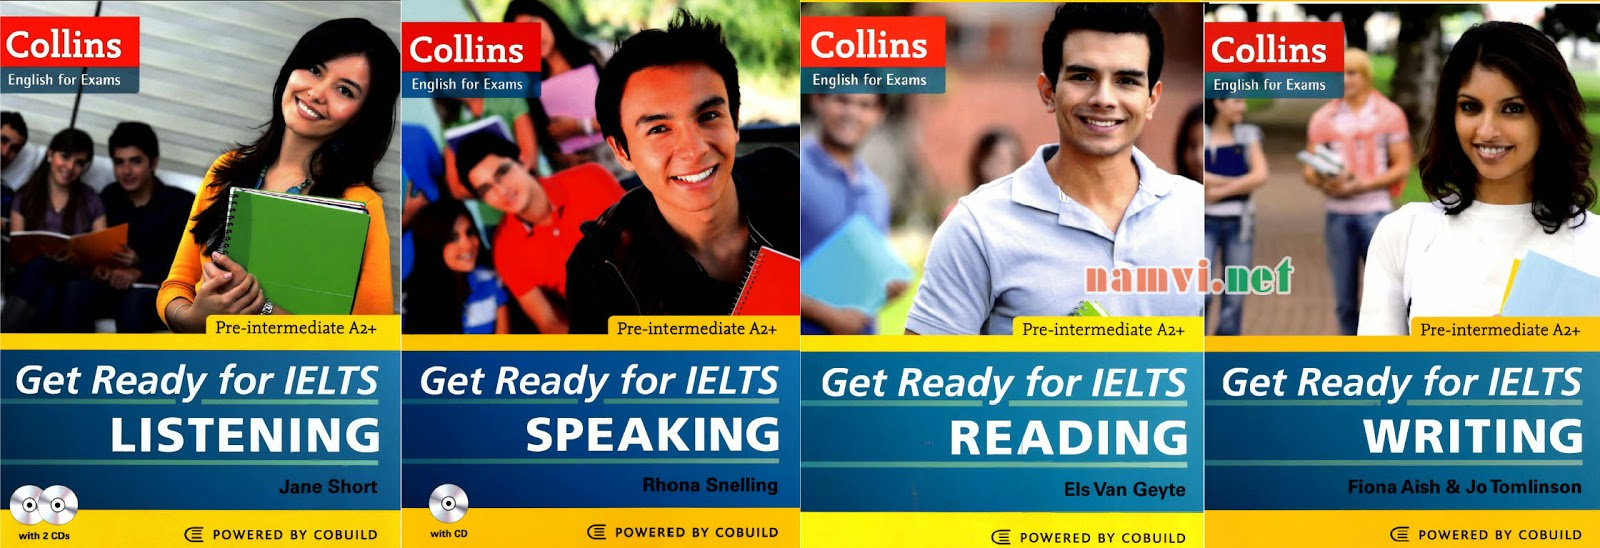 Get Ready for IELTS full